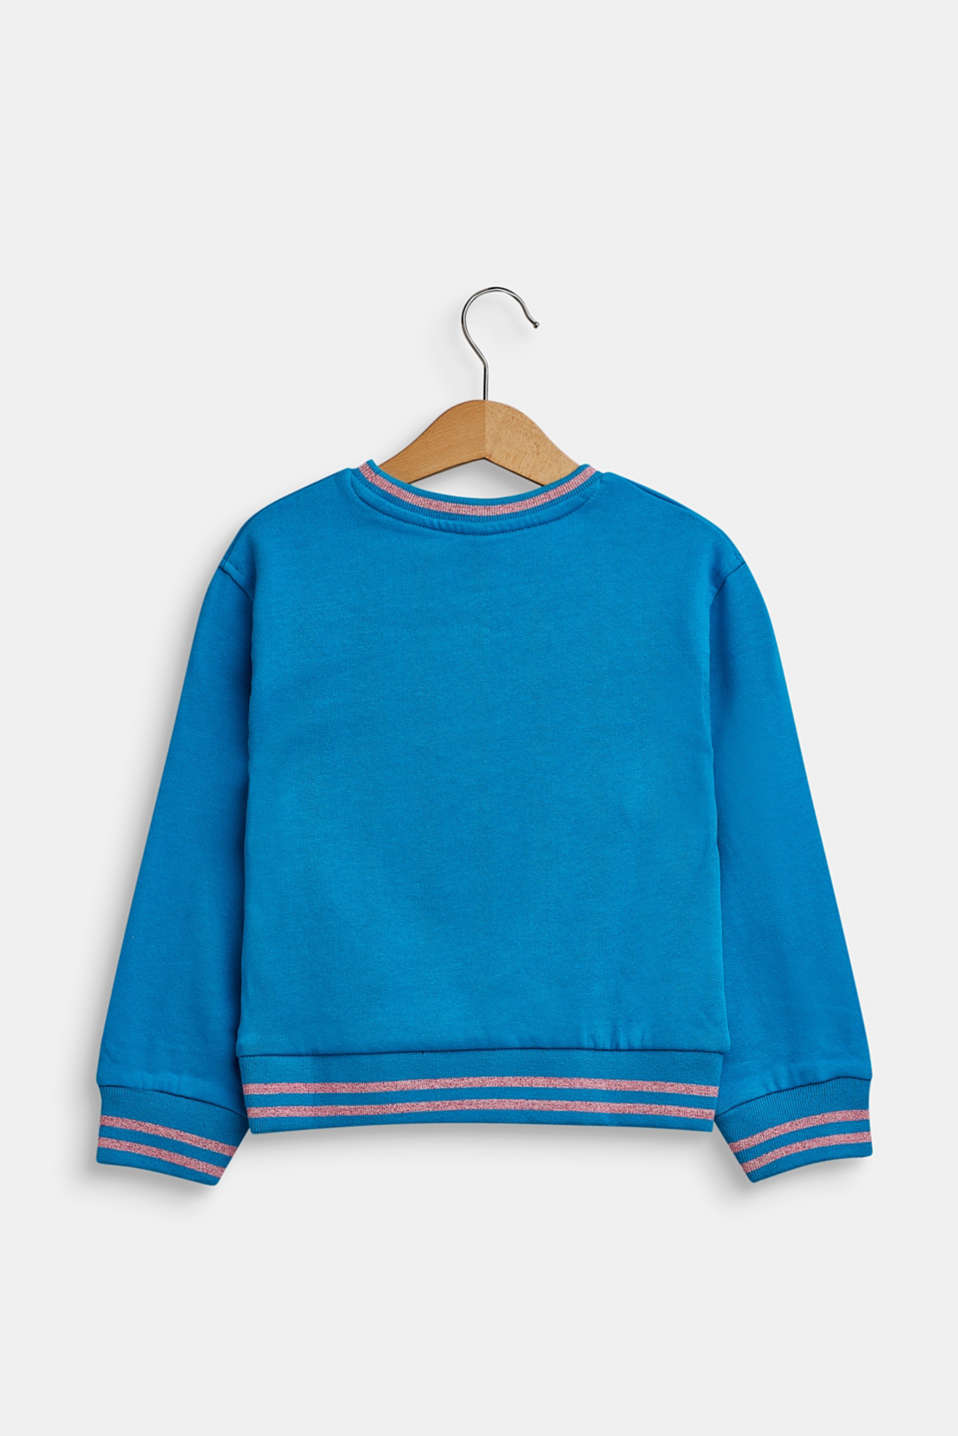 Sweatshirt in 100% cotton, TURQUOISE, detail image number 1